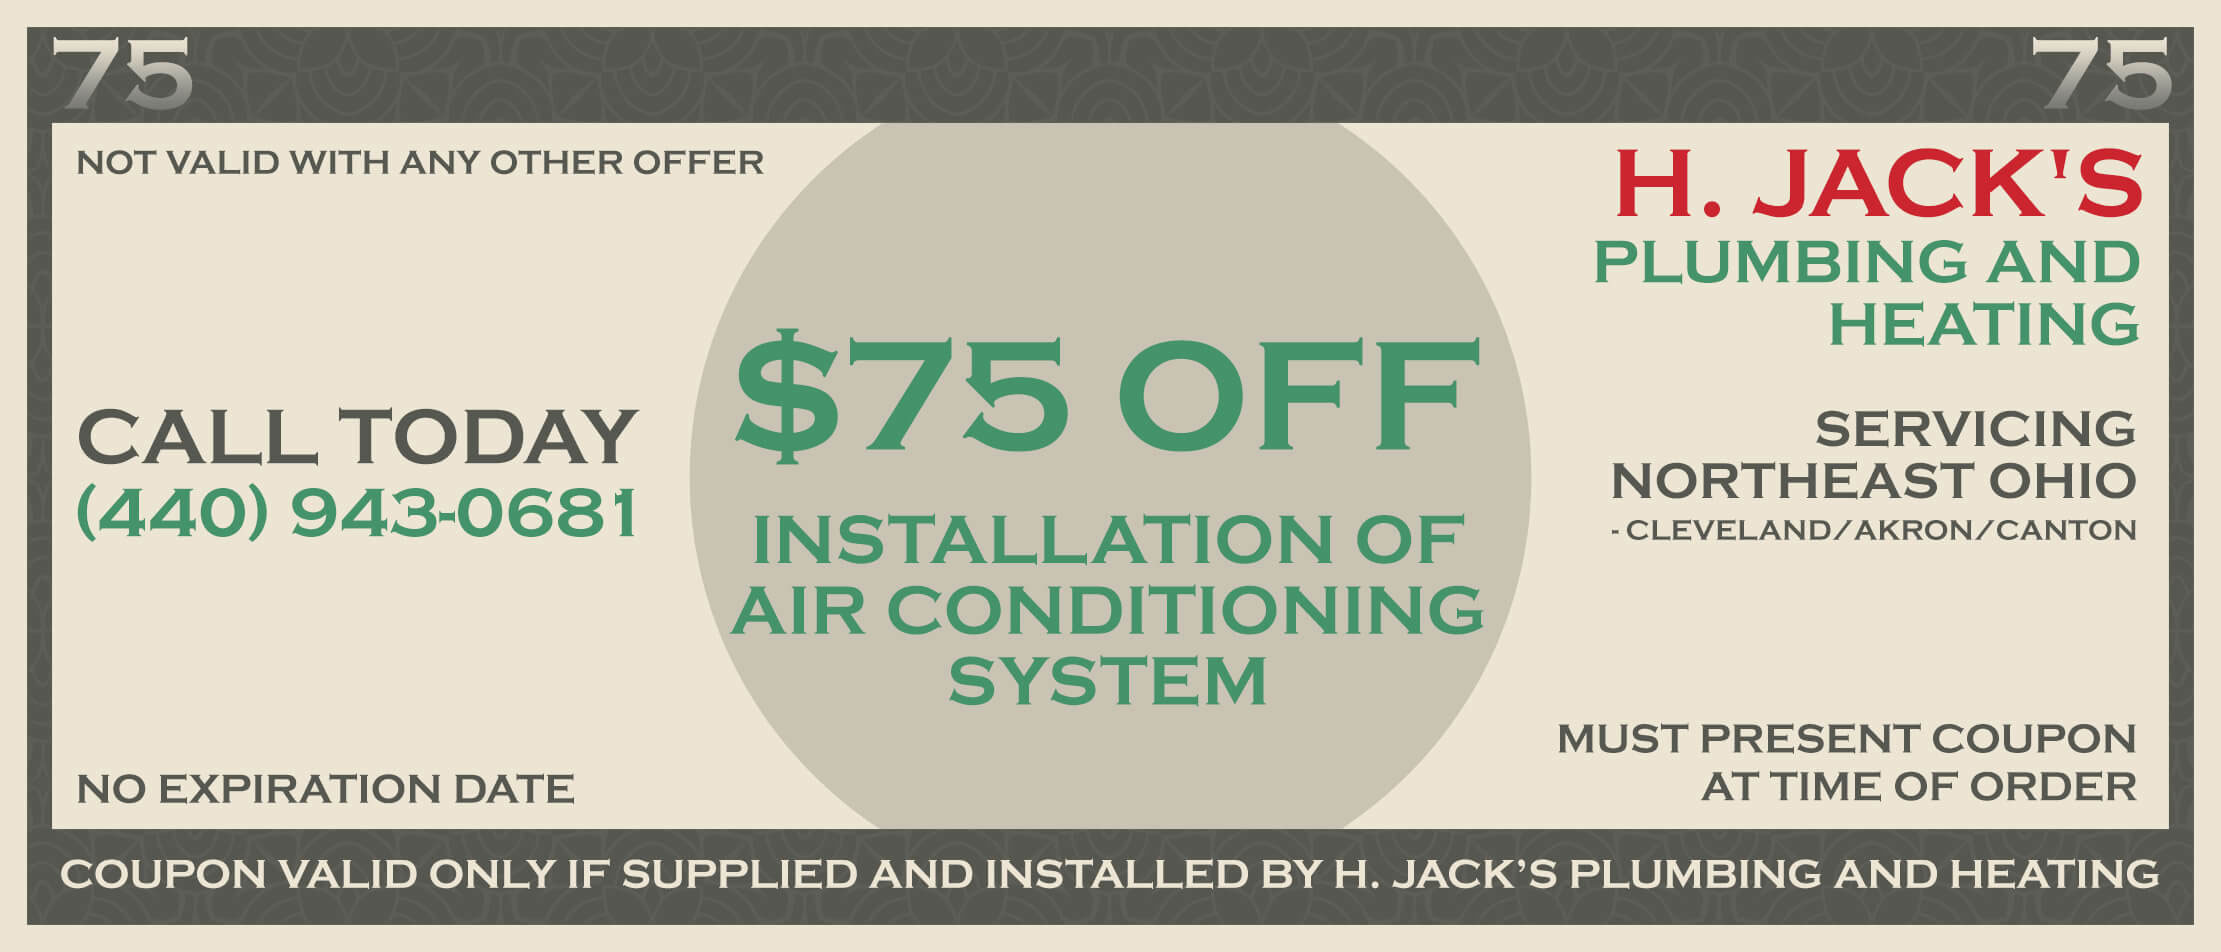 $75 Off Air Conditioning Installation System Coupon